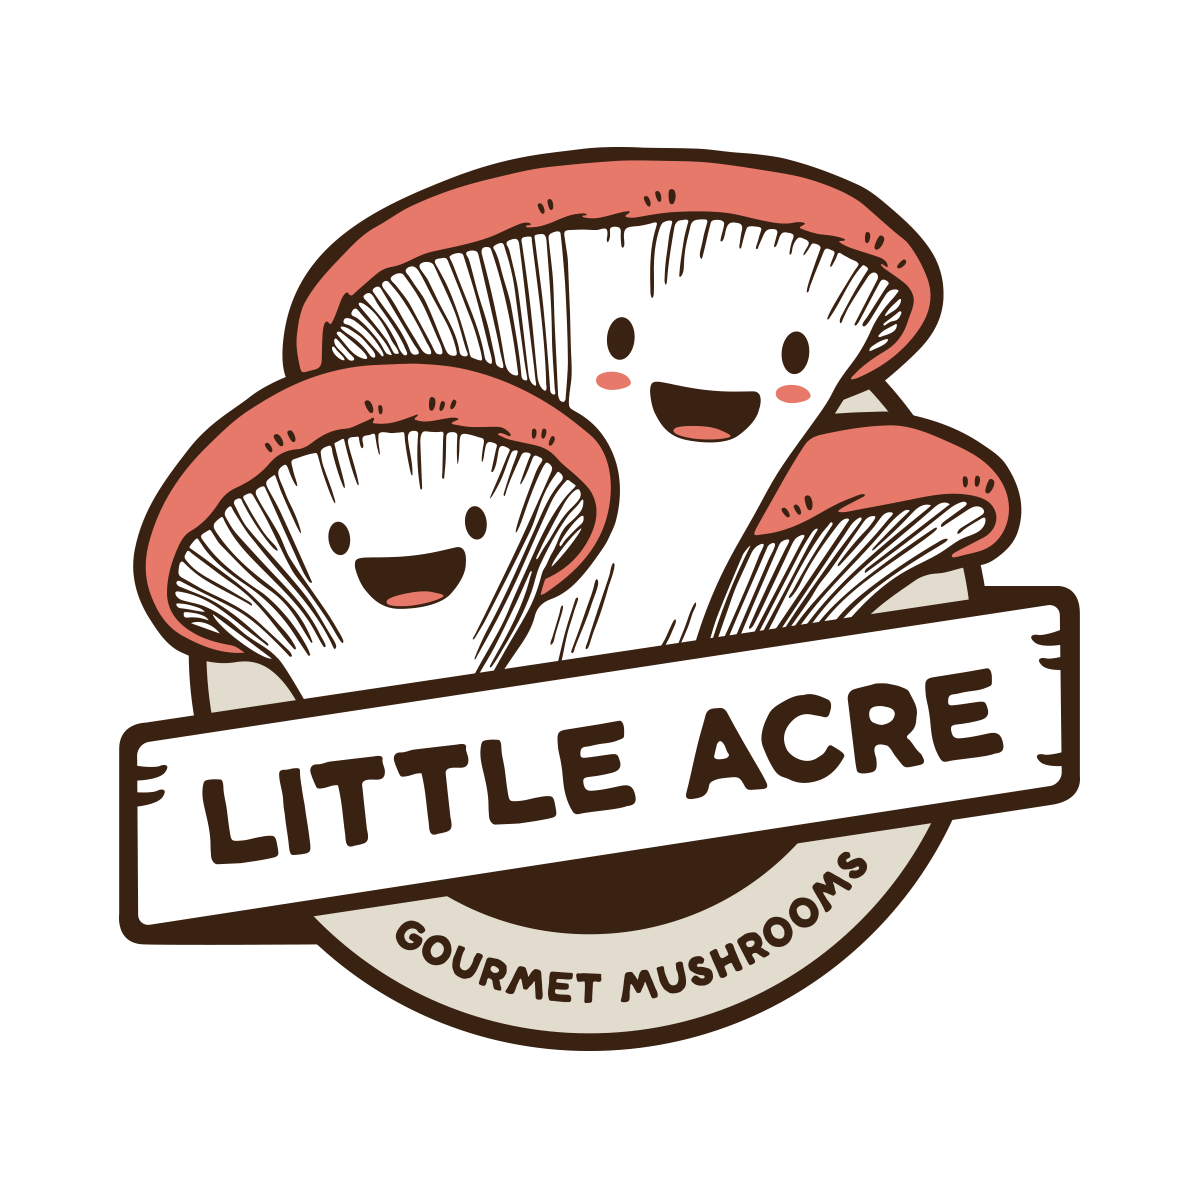 Little Acre logo